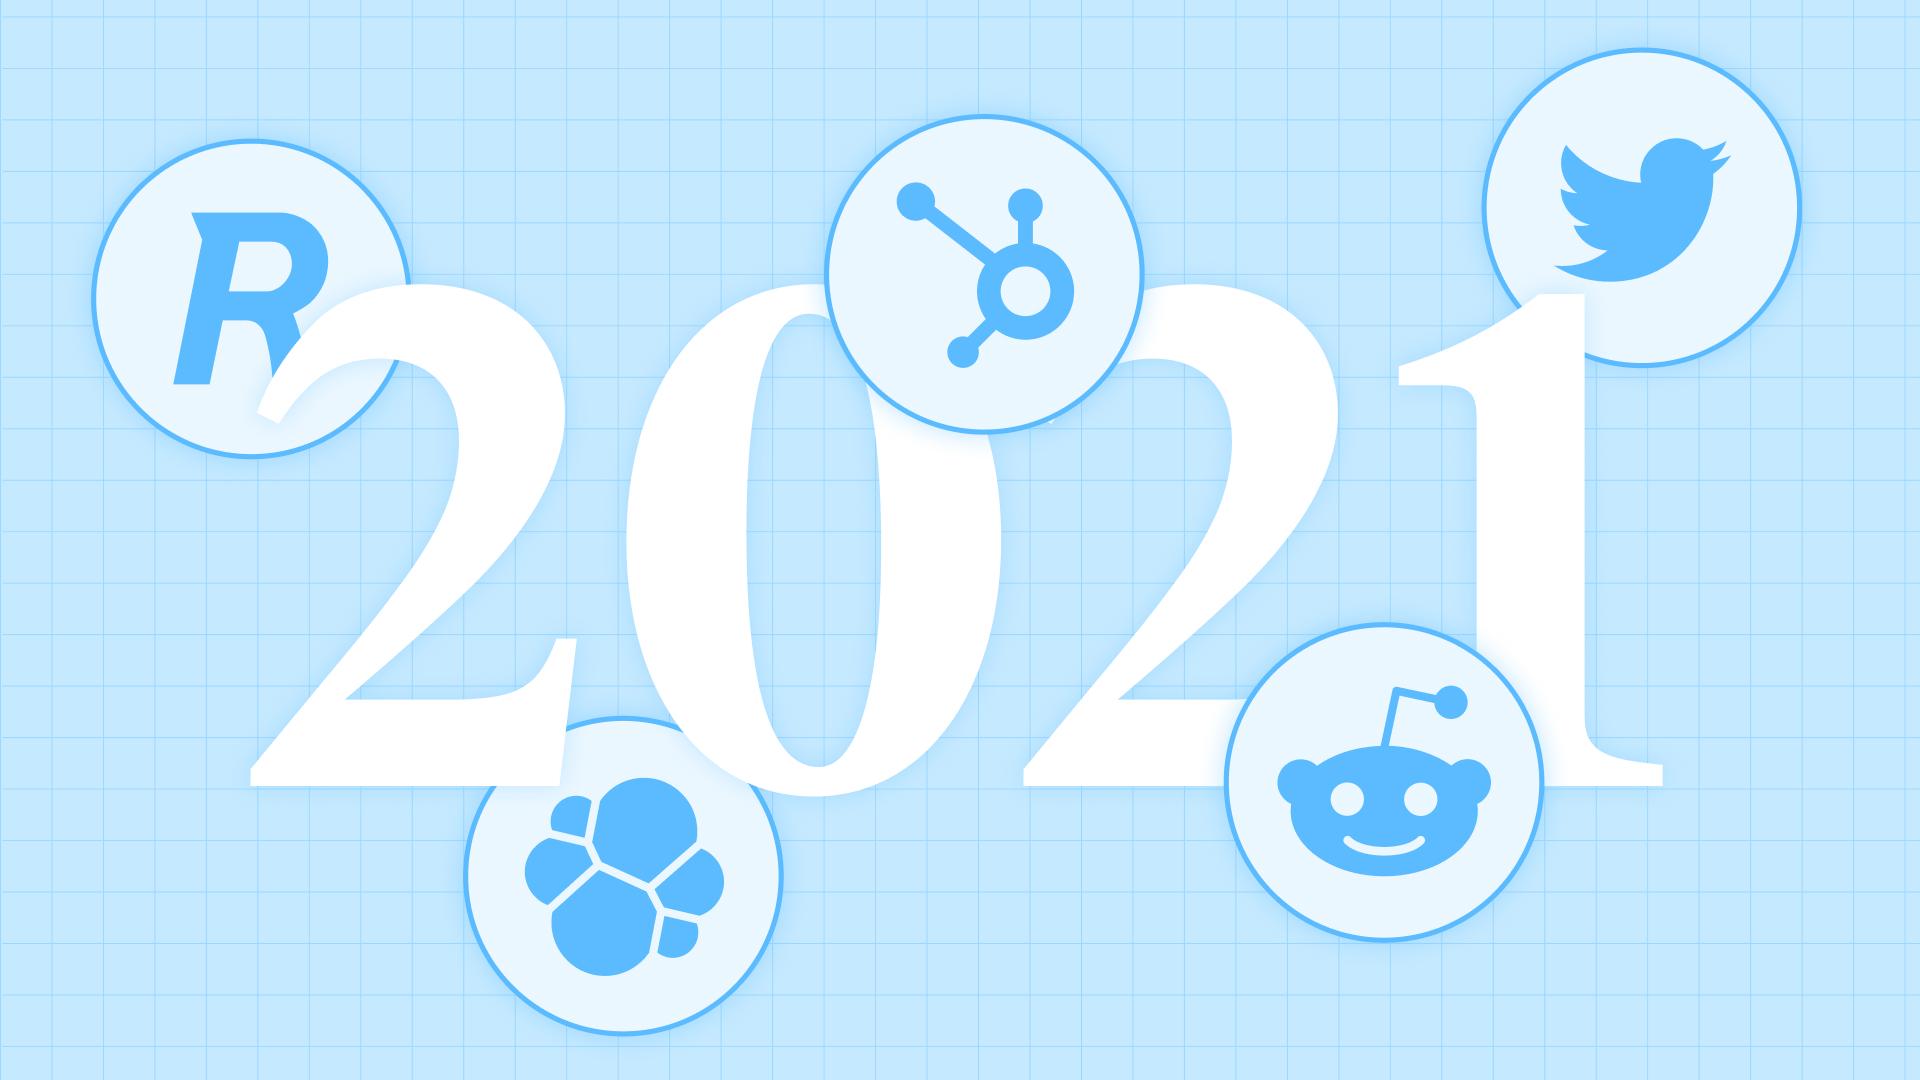 An image of 2021 with logos overlaid on top. Logos for Robin, Twitter, HubSpot, GitHub, and Elastic.